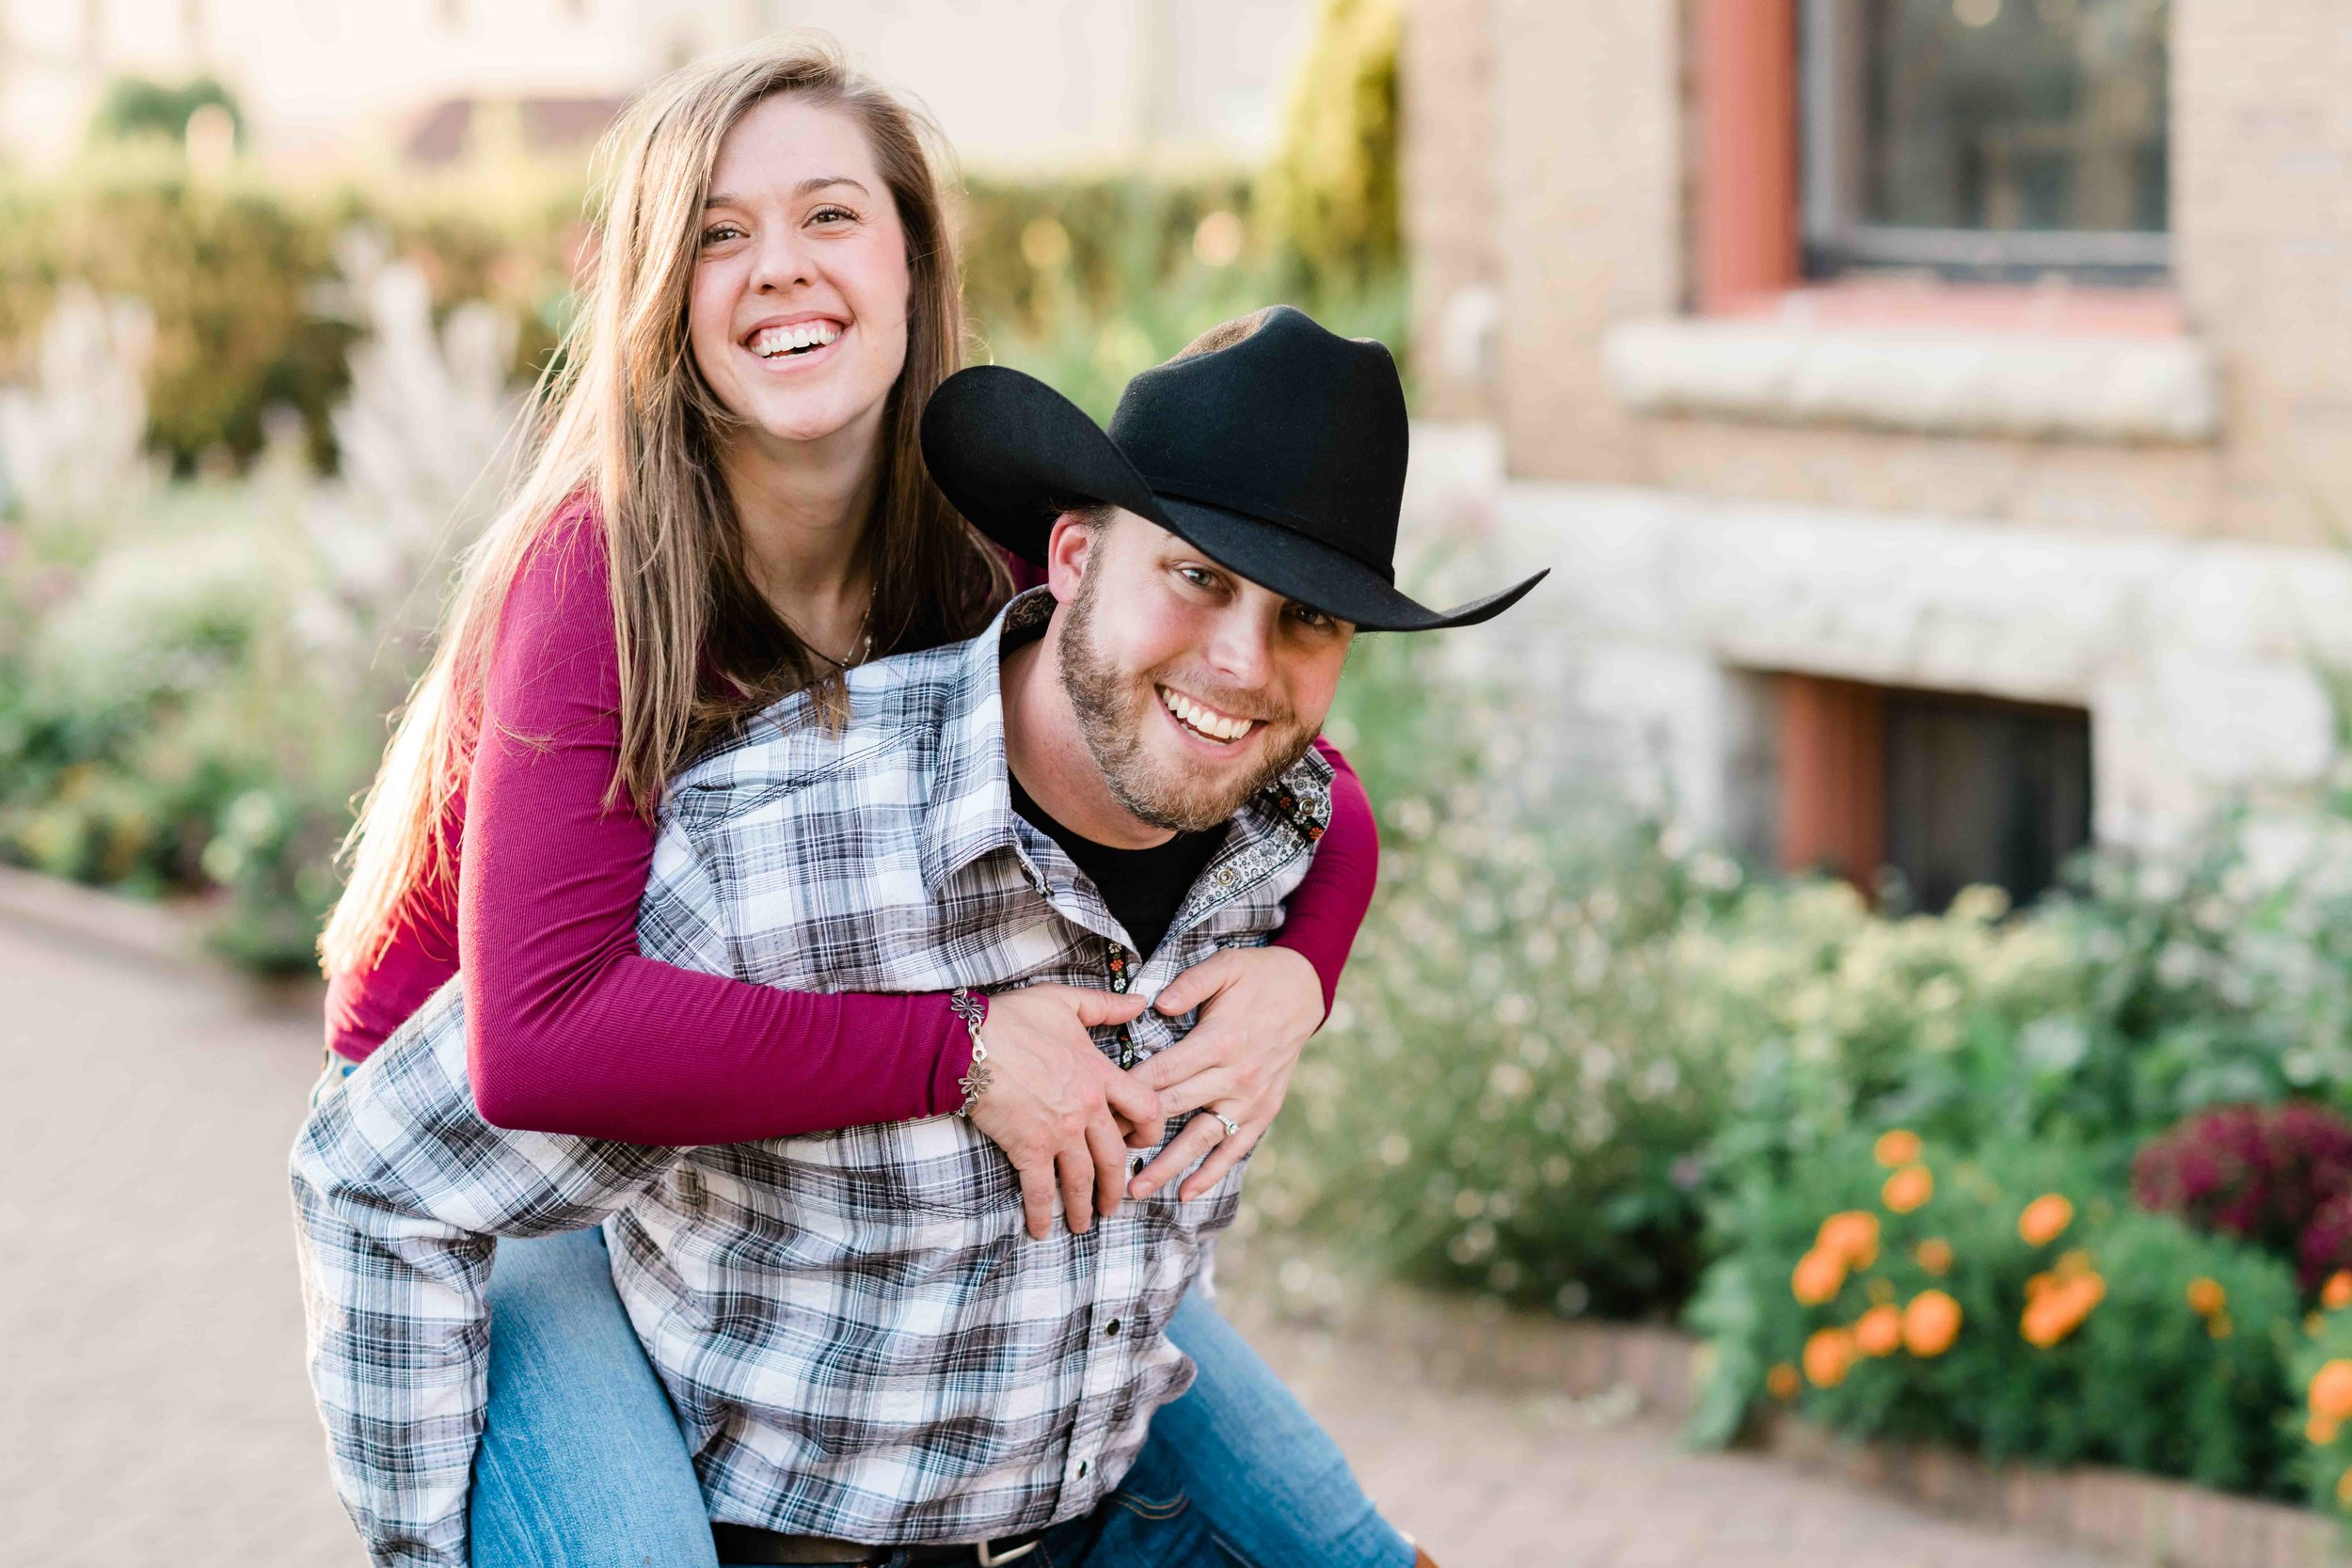 Man gives his fiancé a piggy back ride